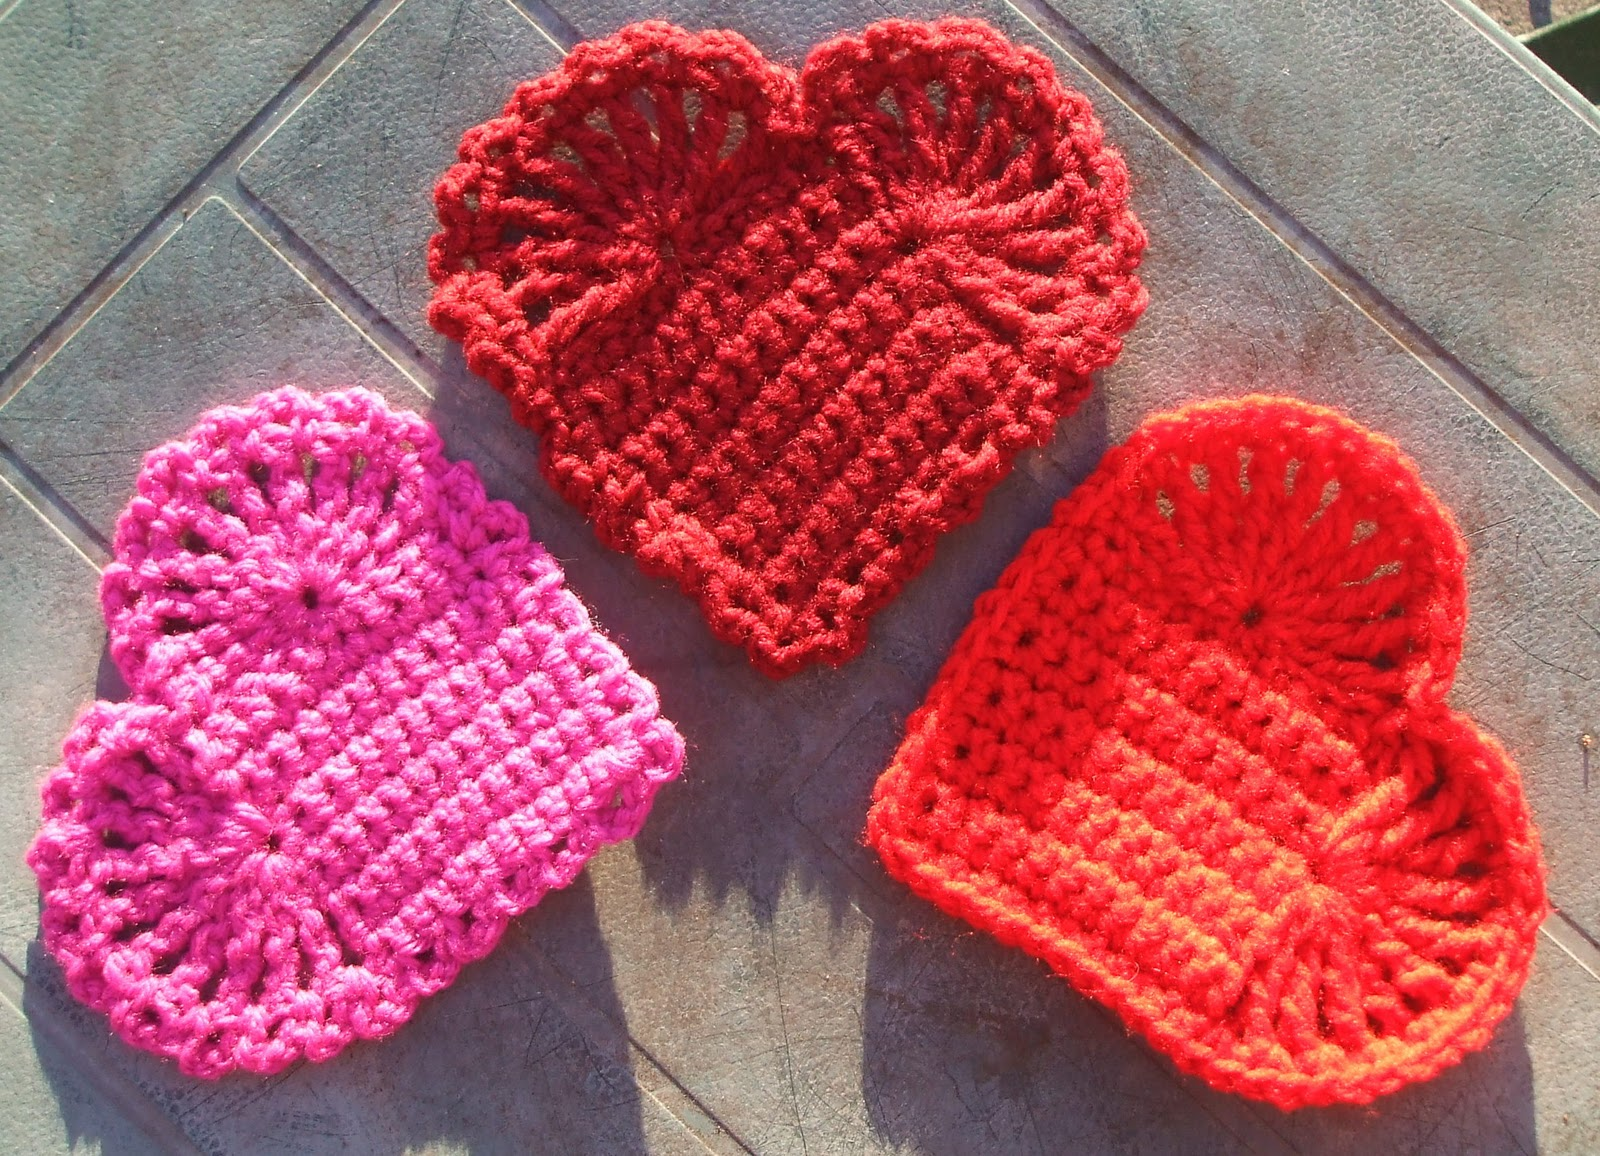 Crochet Patterns Hearts : VogueKnitting.com - Vogue Knitting Welcome